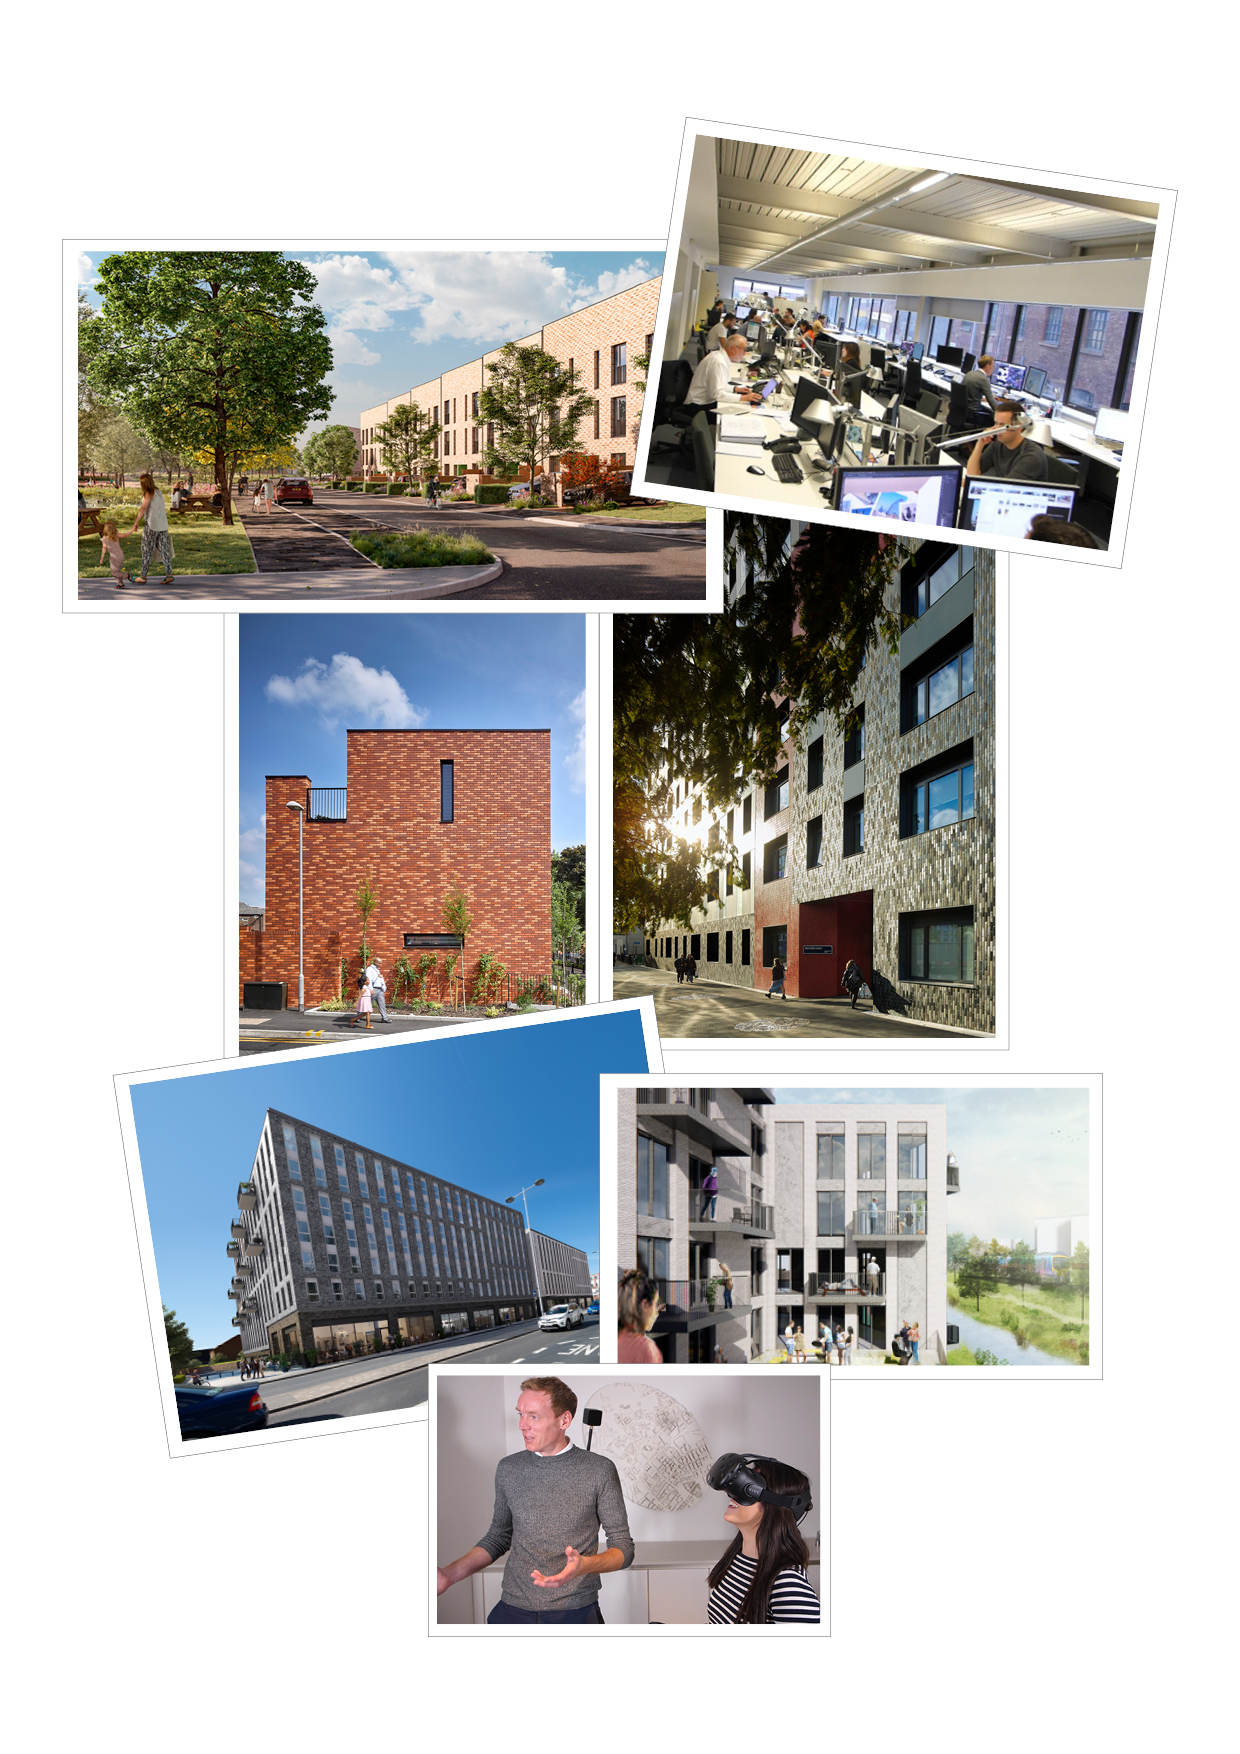 We're hiring: Architectural Technologist